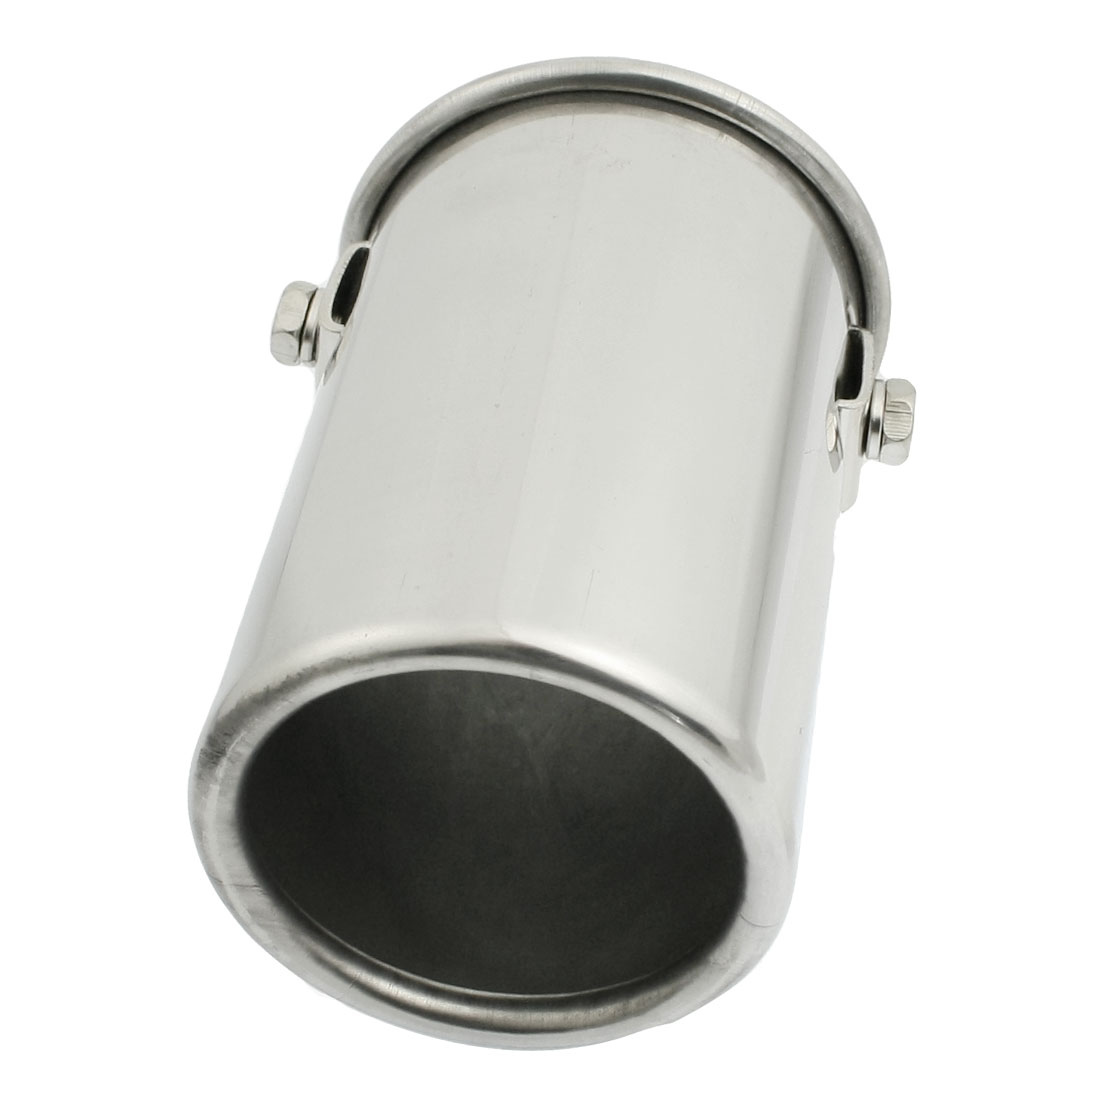 Stainless Steel Auto Car Exhaust Pipe Silencer Muffler Tip 51mm x 100mm